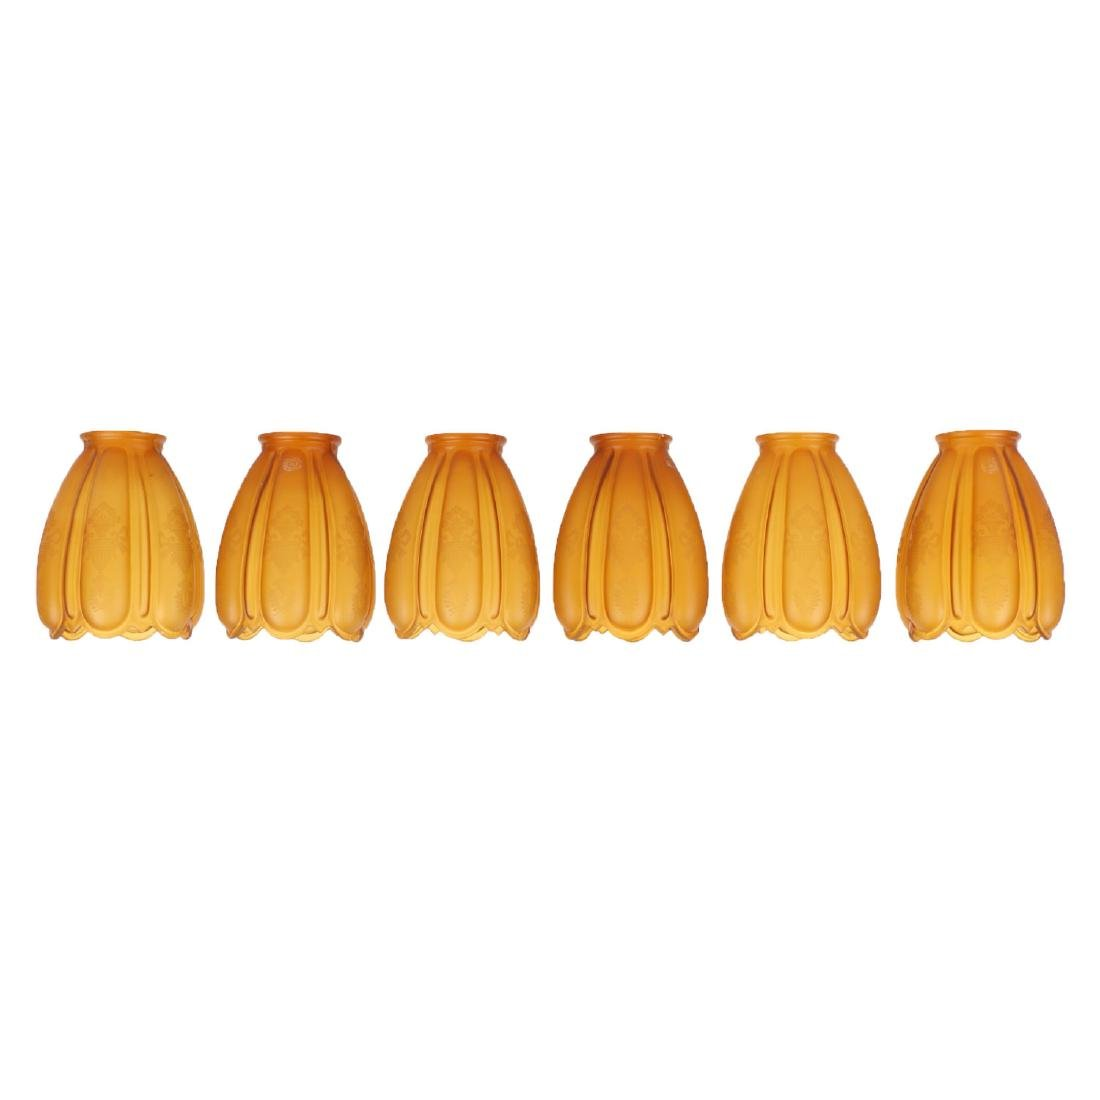 Bellova Art Glass Lamp Shades